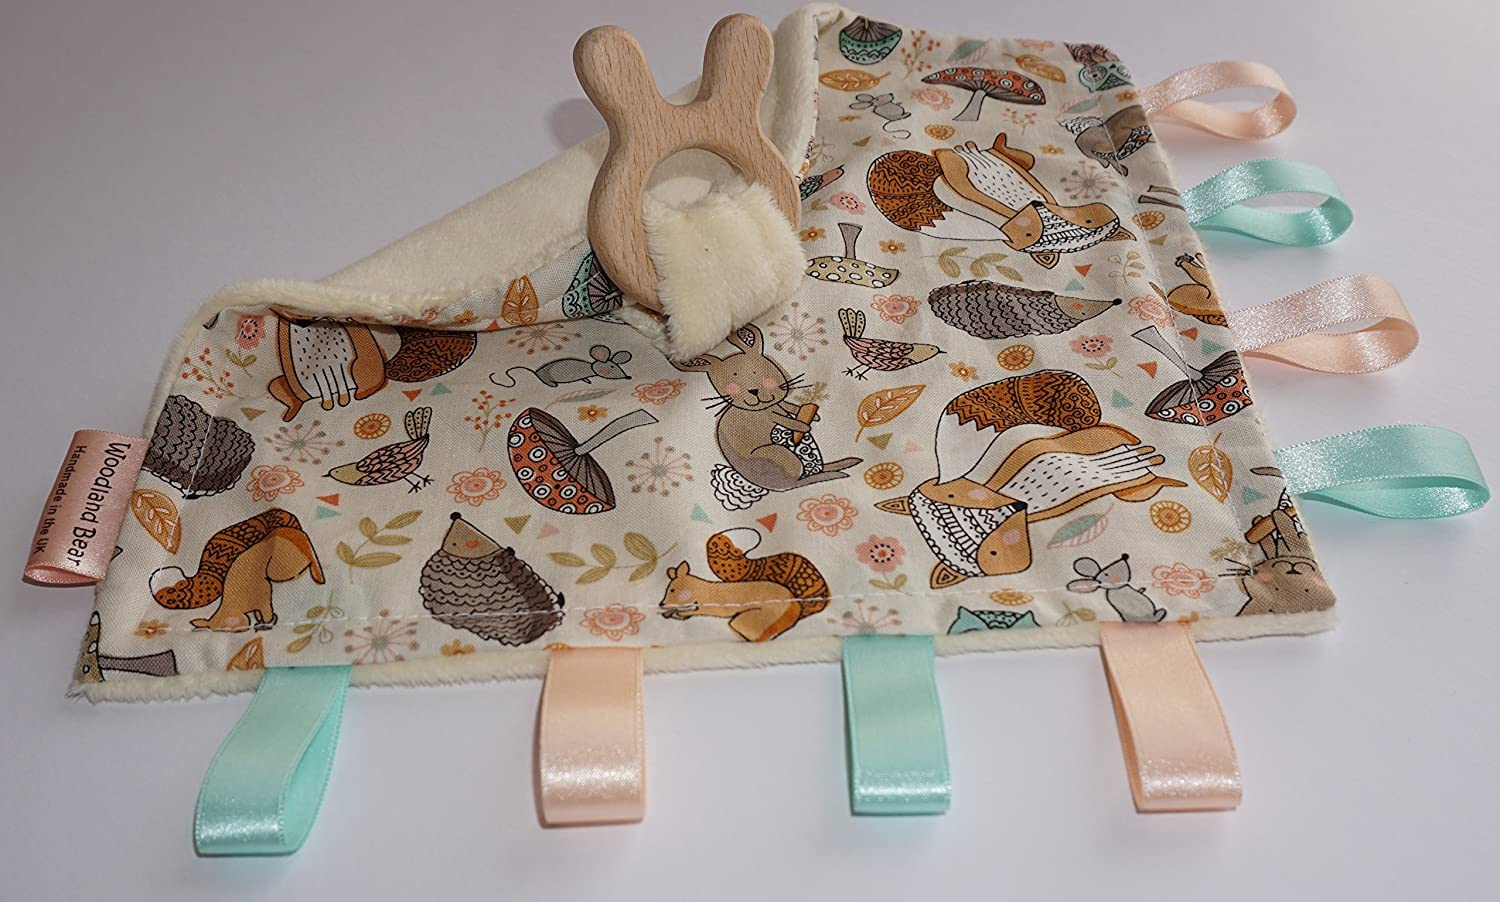 Teething baby blanket comforter - Woodland Animals - organic wooden teething rabbit ears - CE certified from birth